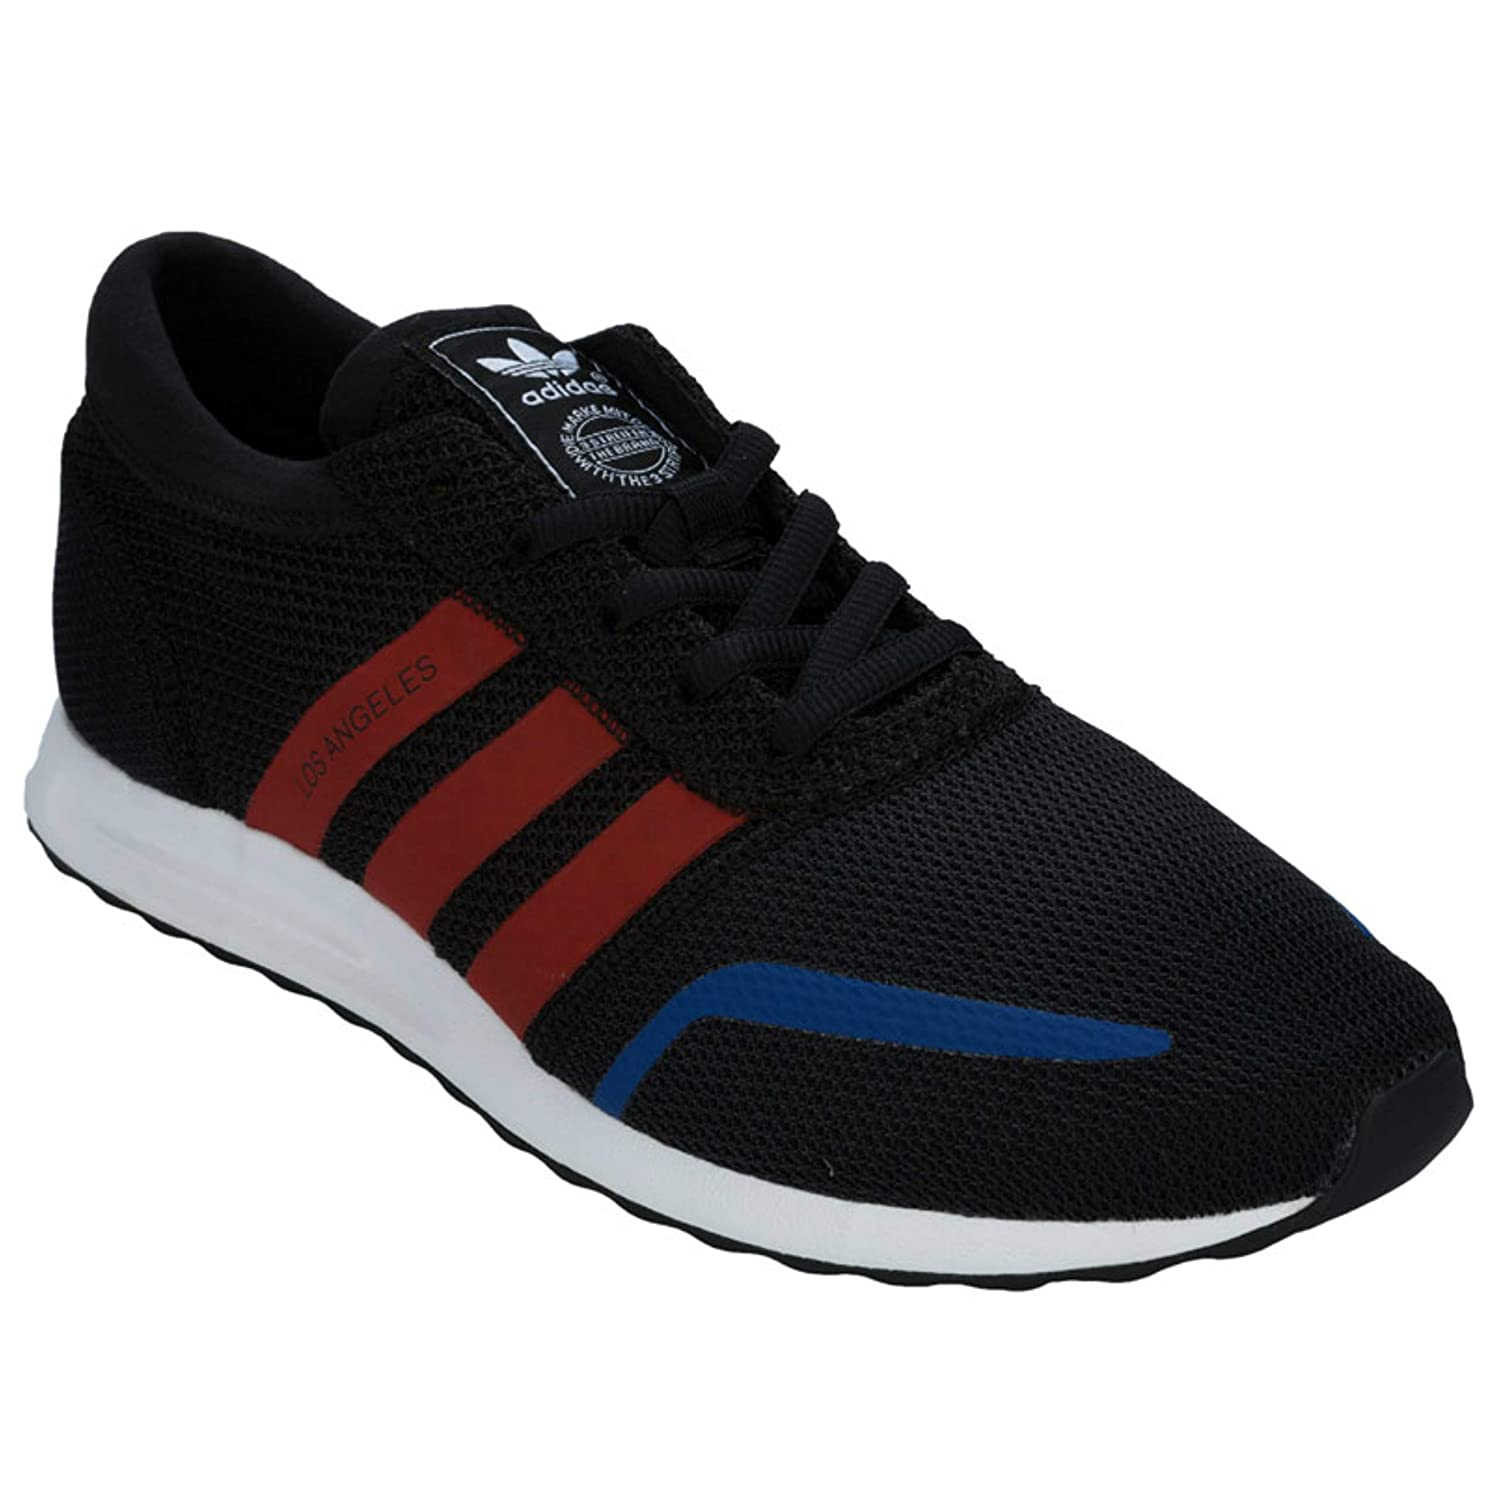 adidas Los Angeles Trainers AQ4541 Men's UK 9.5, EUR 44